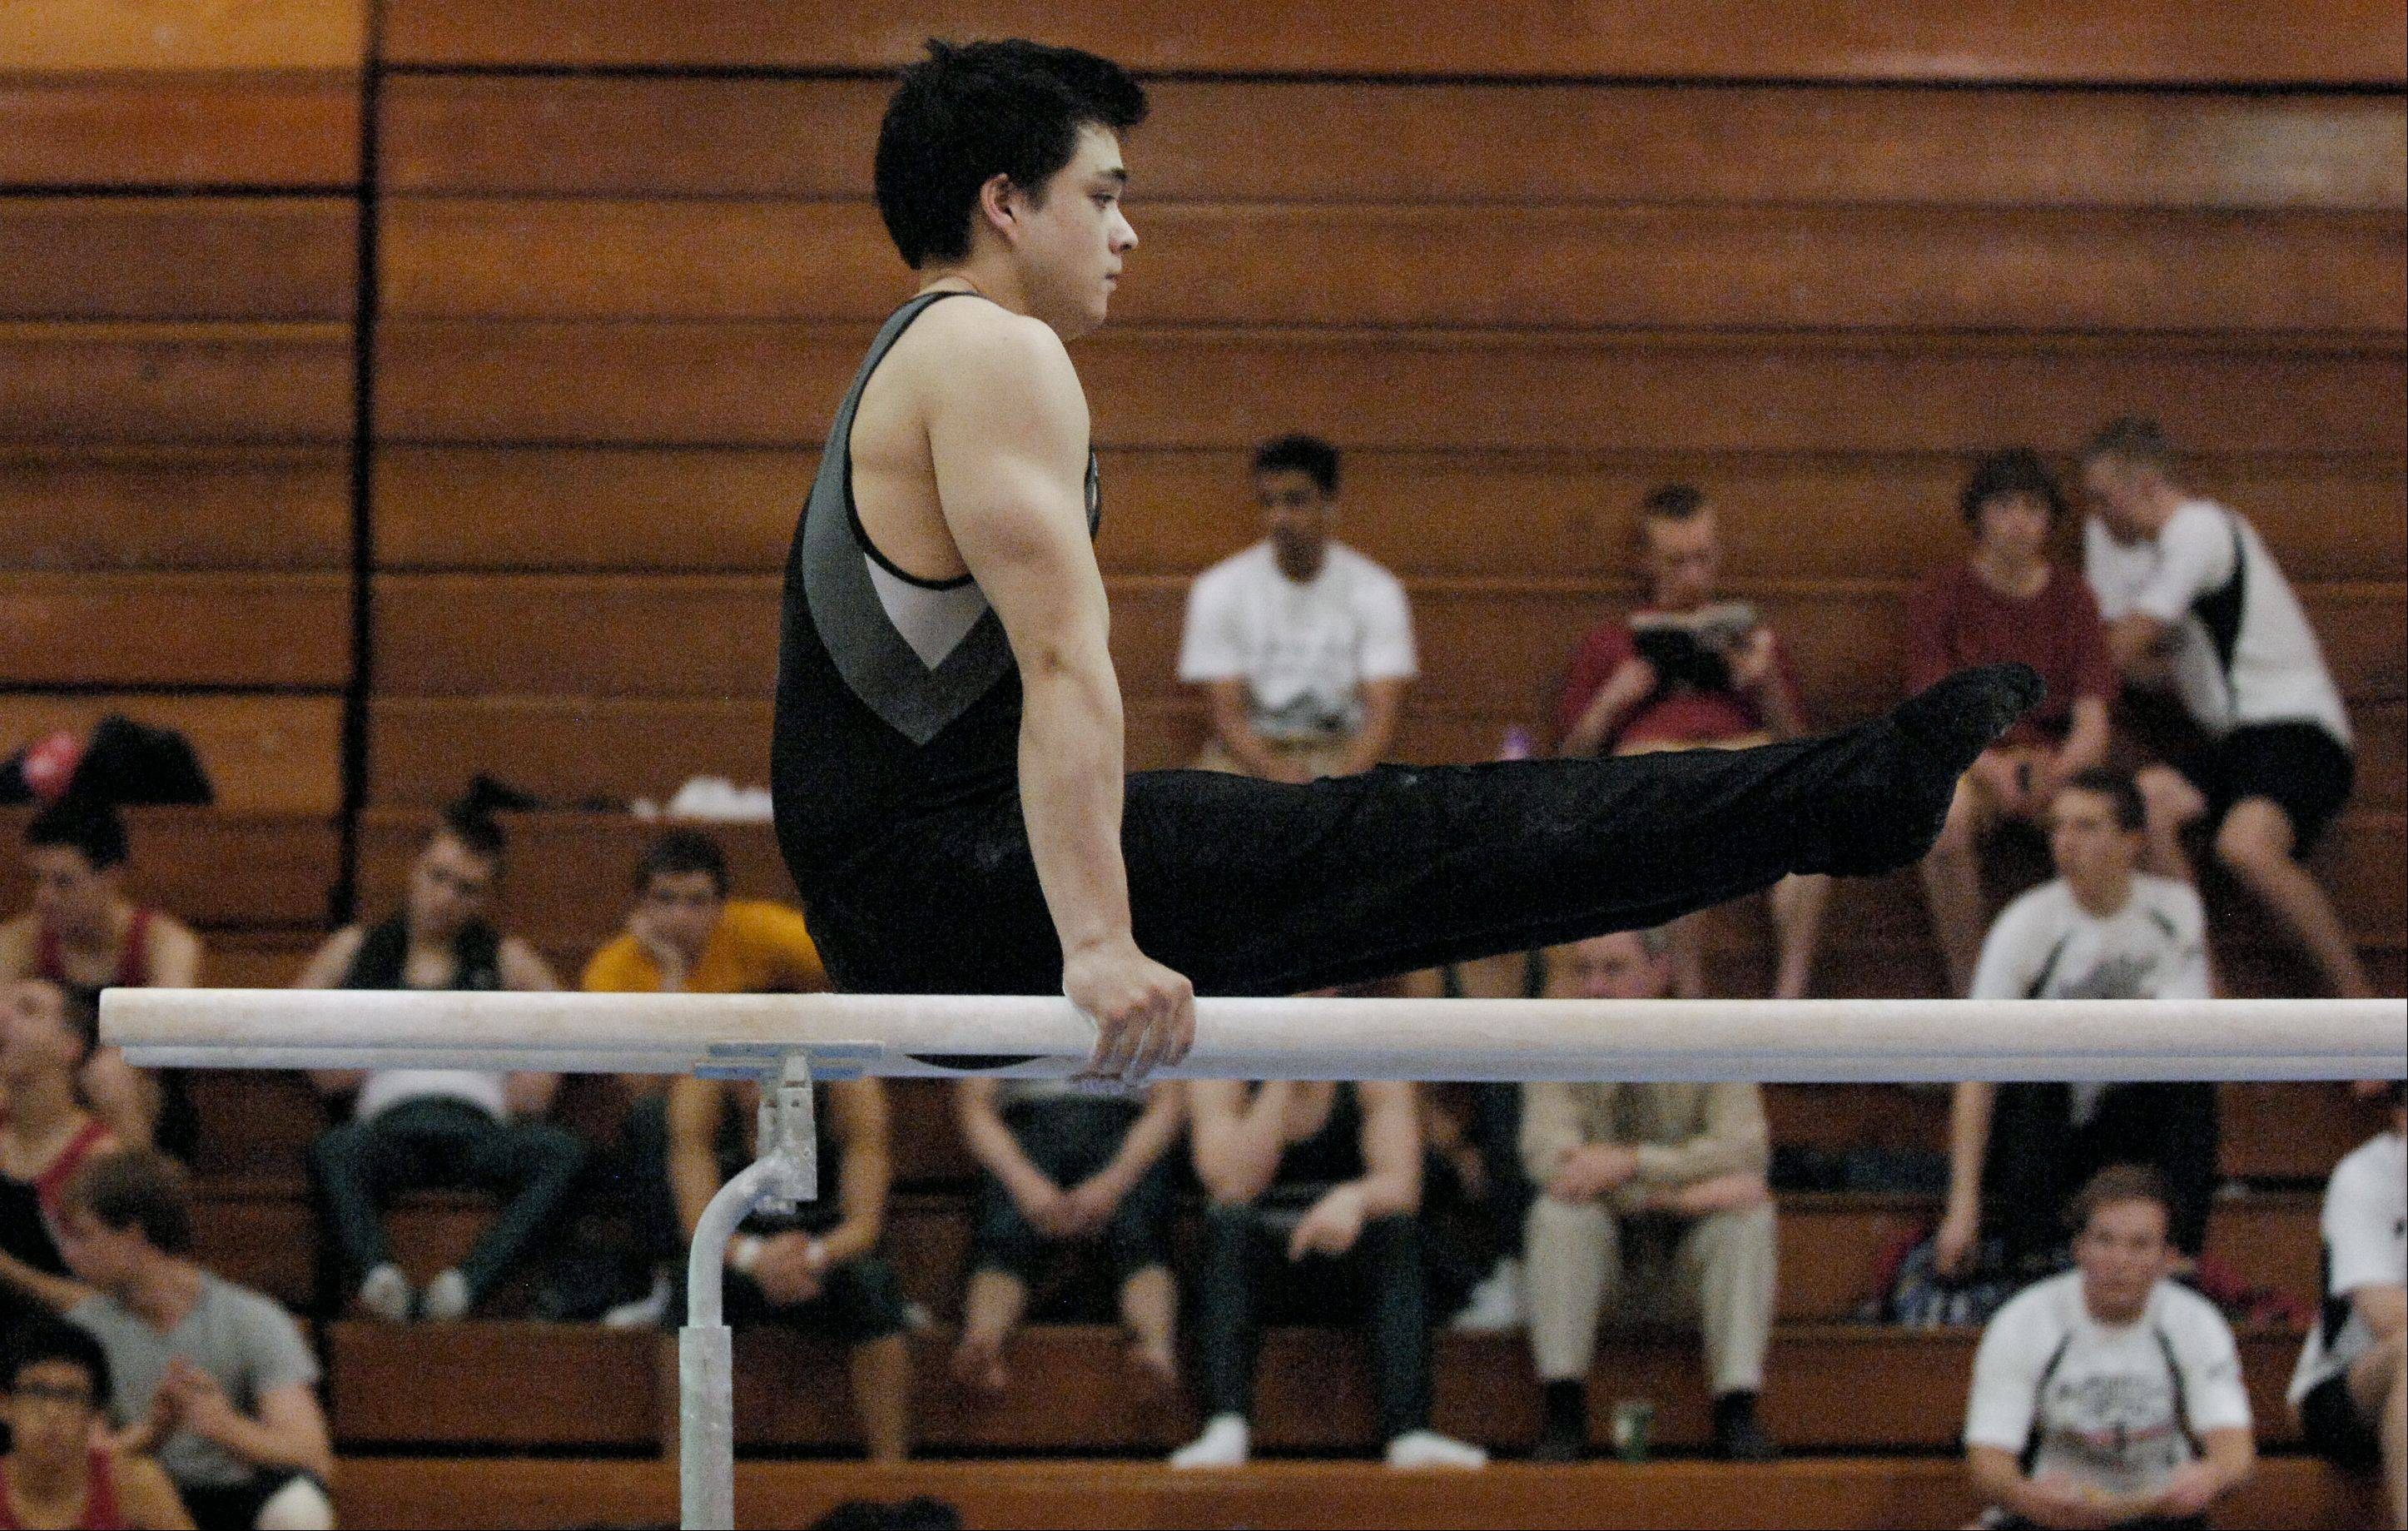 Keawe Winstead of Willowbrook performs on the Parallel Bars during the Wheaton Warrenville South boys gymnastics sectional, Wednesday.